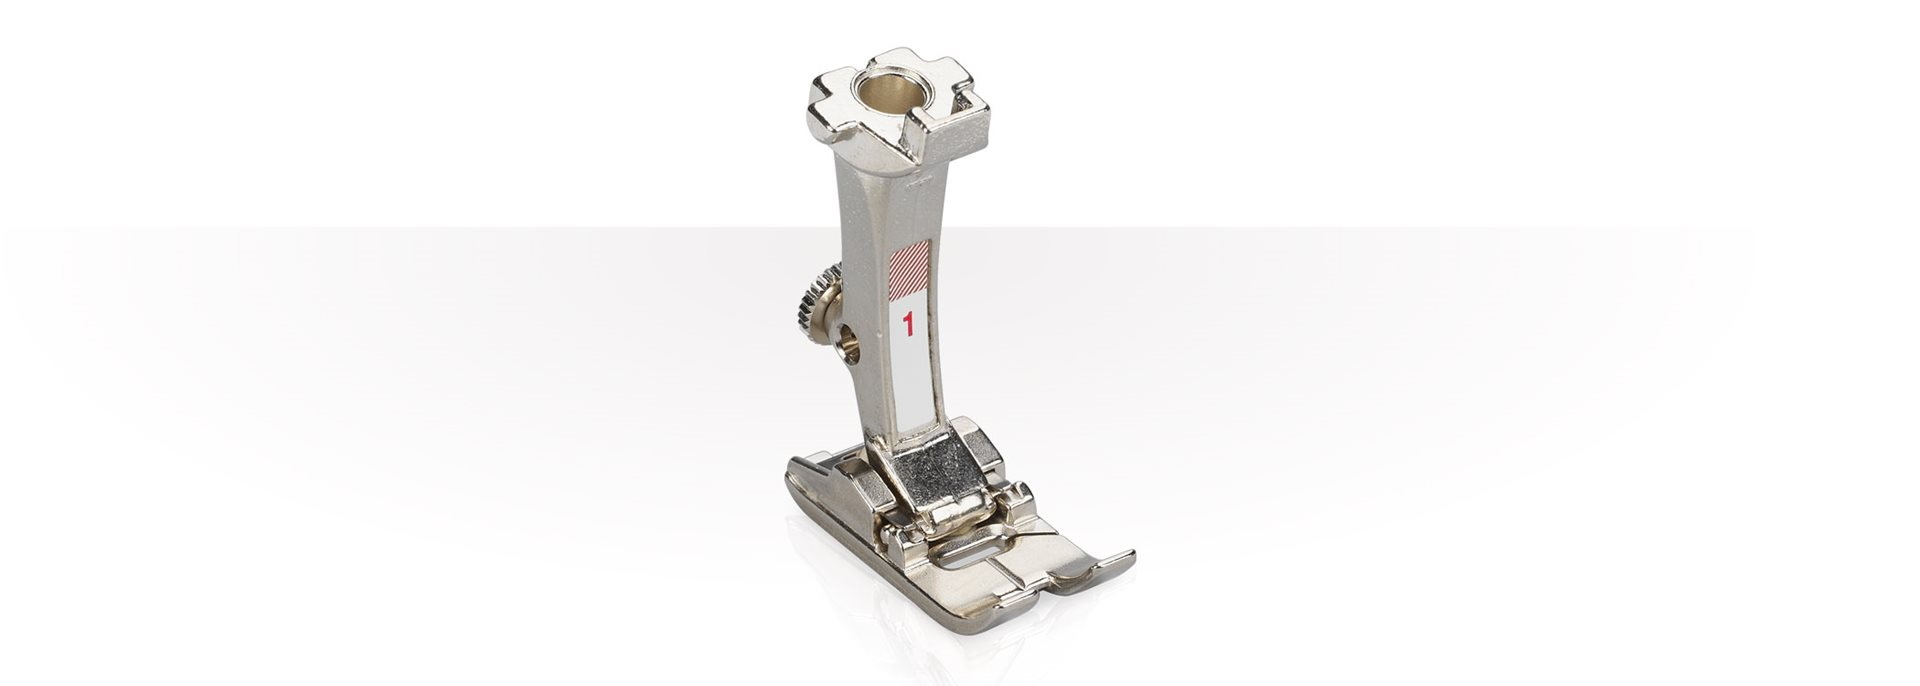 Bernina Foot #1, Reverse Pattern (Old-Style) -  In Store Sales Only